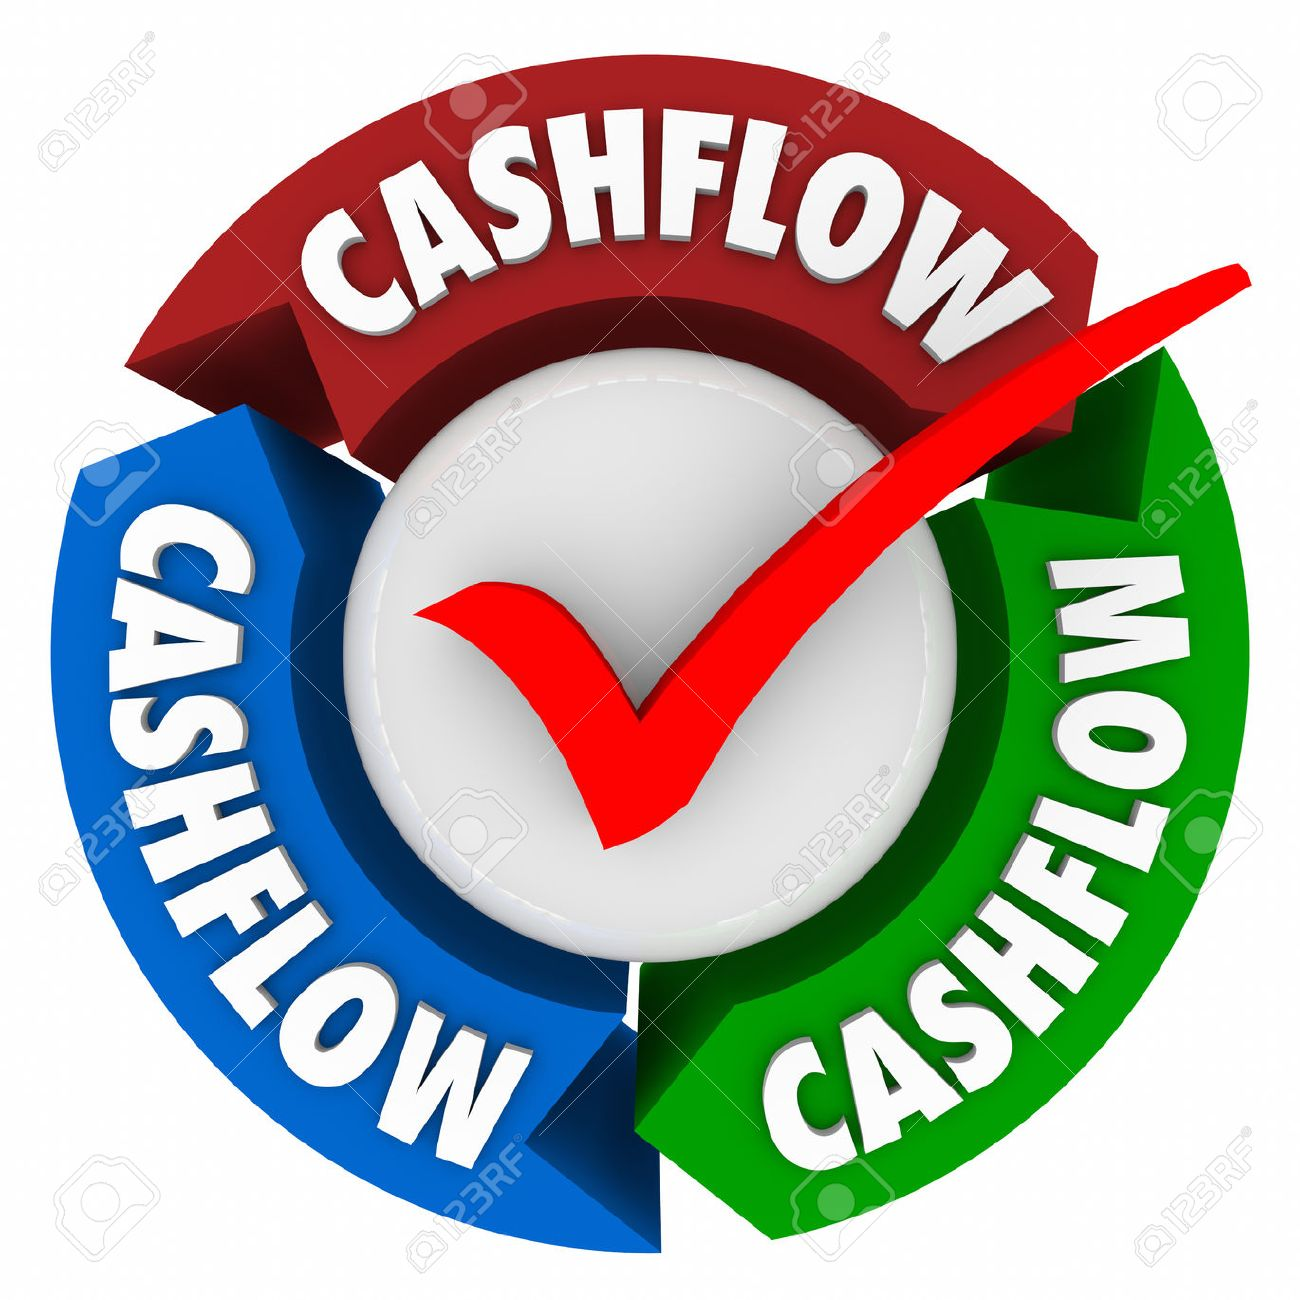 Cashflow Word On Arrows And Check Mark To Earn Money Or Add An Income Or  Revenue